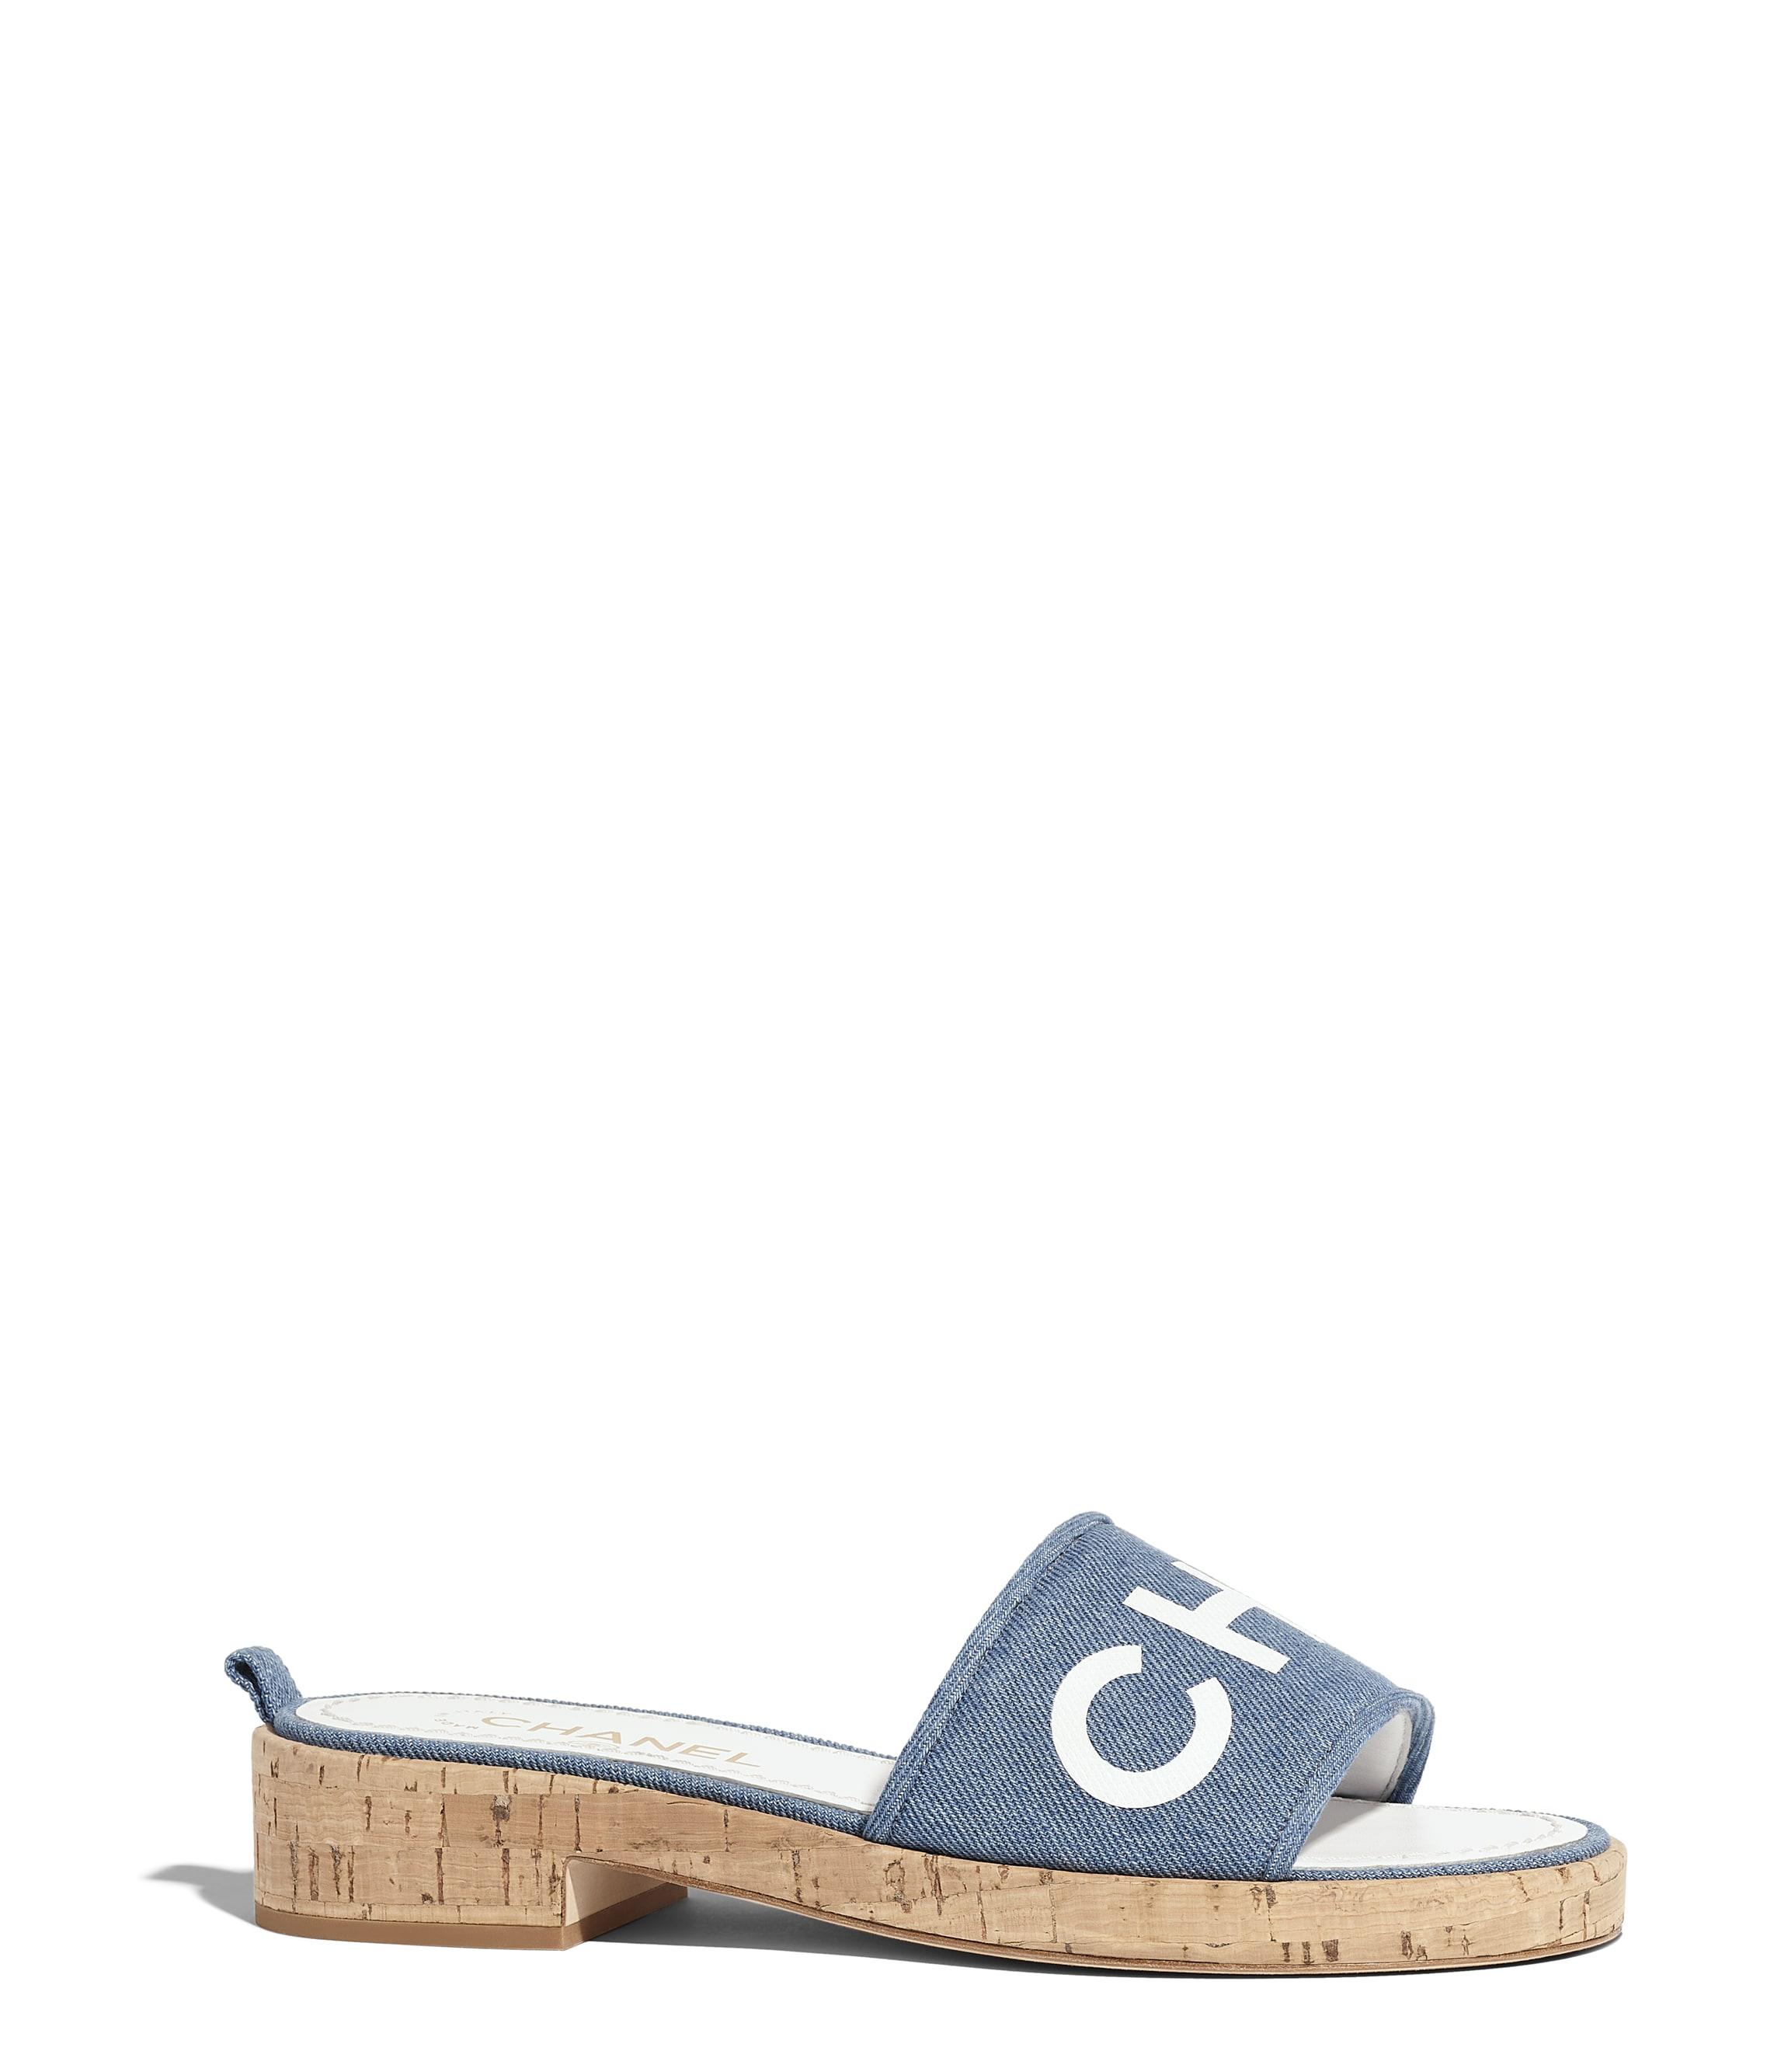 f590952f78eb Sandals - Shoes - CHANEL